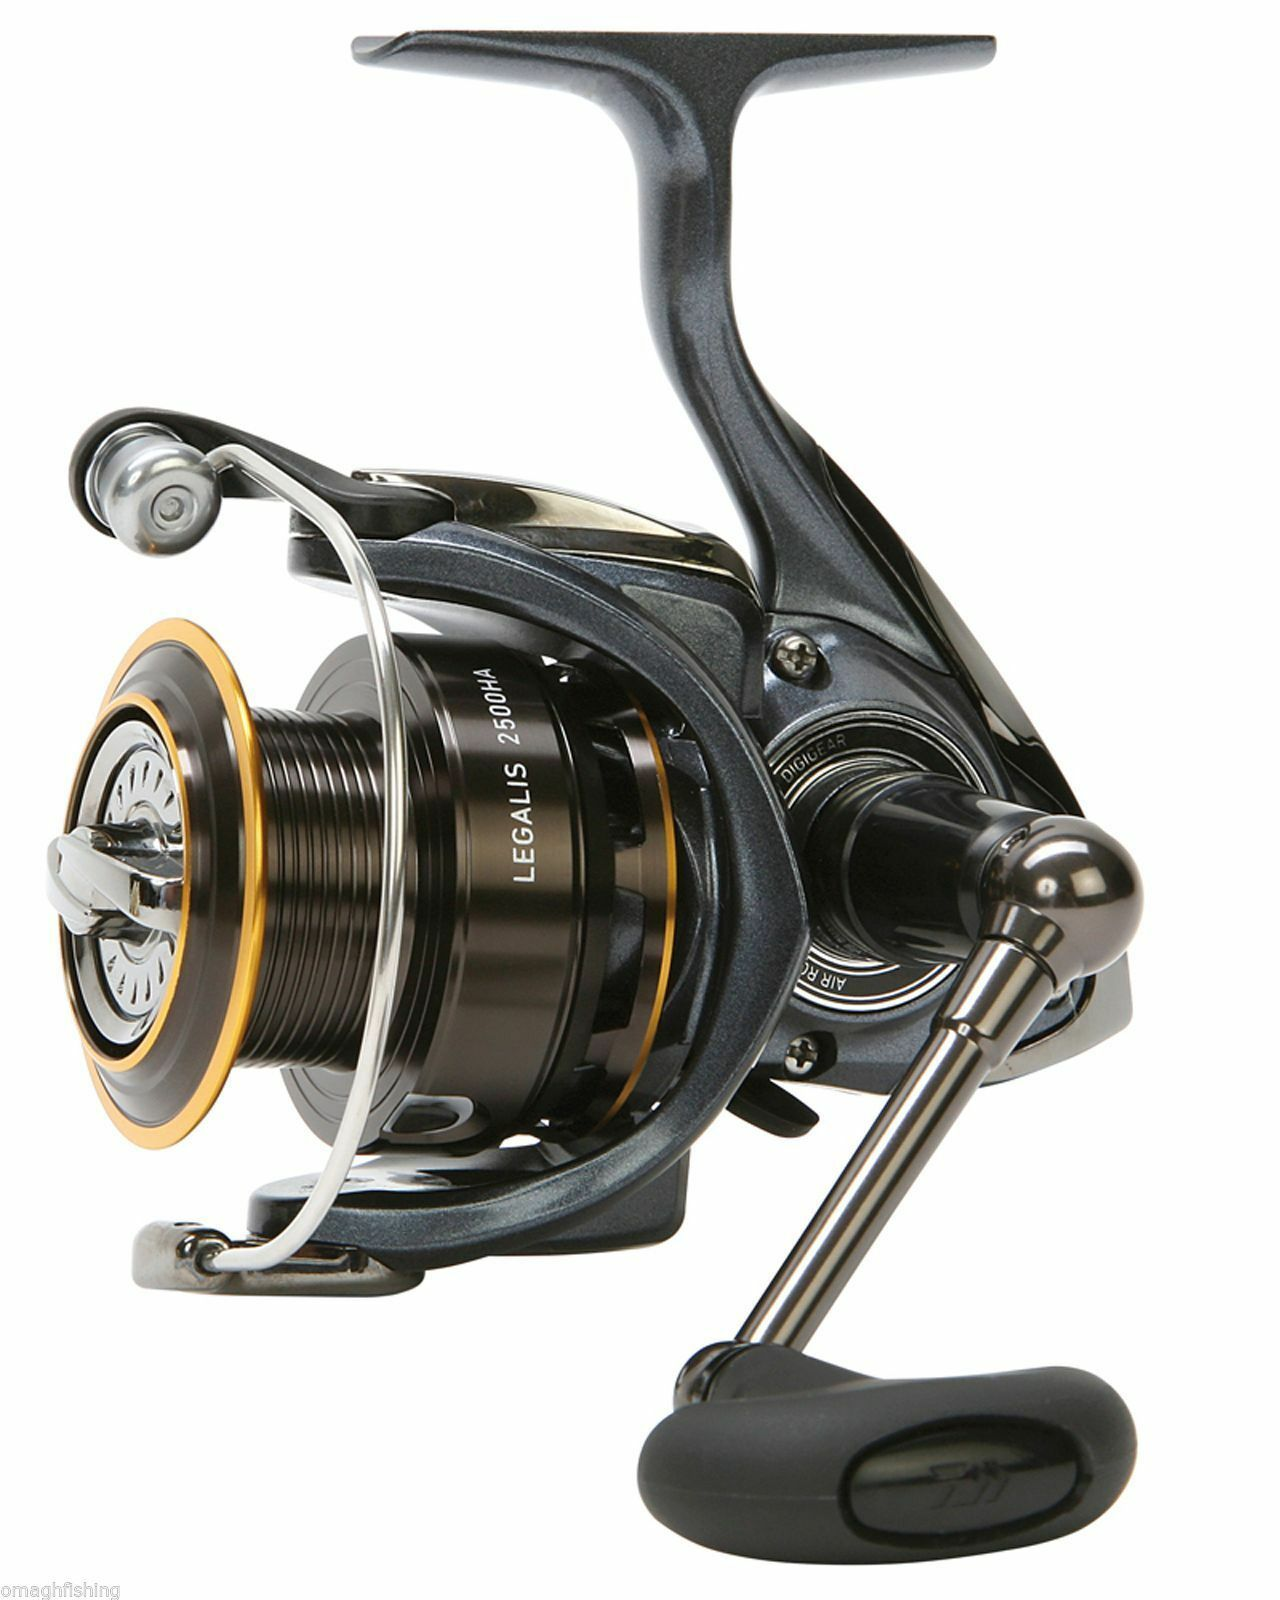 Daiwa Legalis Front Drag Carp Feeder Spinning Reel Choice 2500HA,3000HA,4000HA